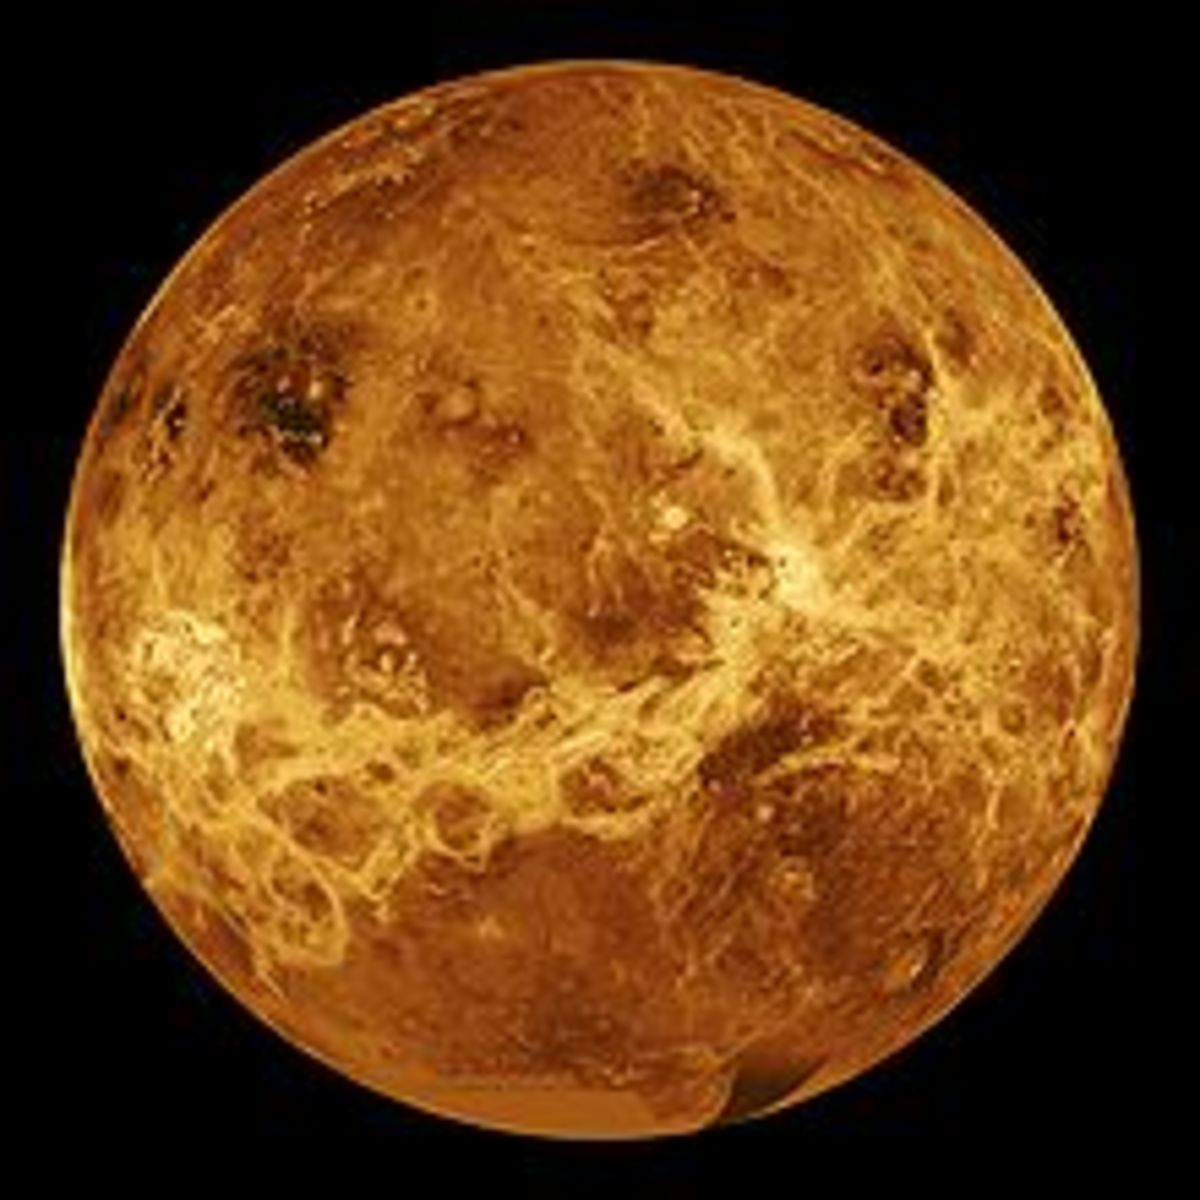 Diameter of Venus = 7,522 Miles Distance from Venus to the Sun = 67 Million Miles at its closest, to 68 Million miles at its furthest. Distance from Venus to Earth = 25 Million Miles at its closest. One Rotation of Venus takes = 243 Earth Days One Or